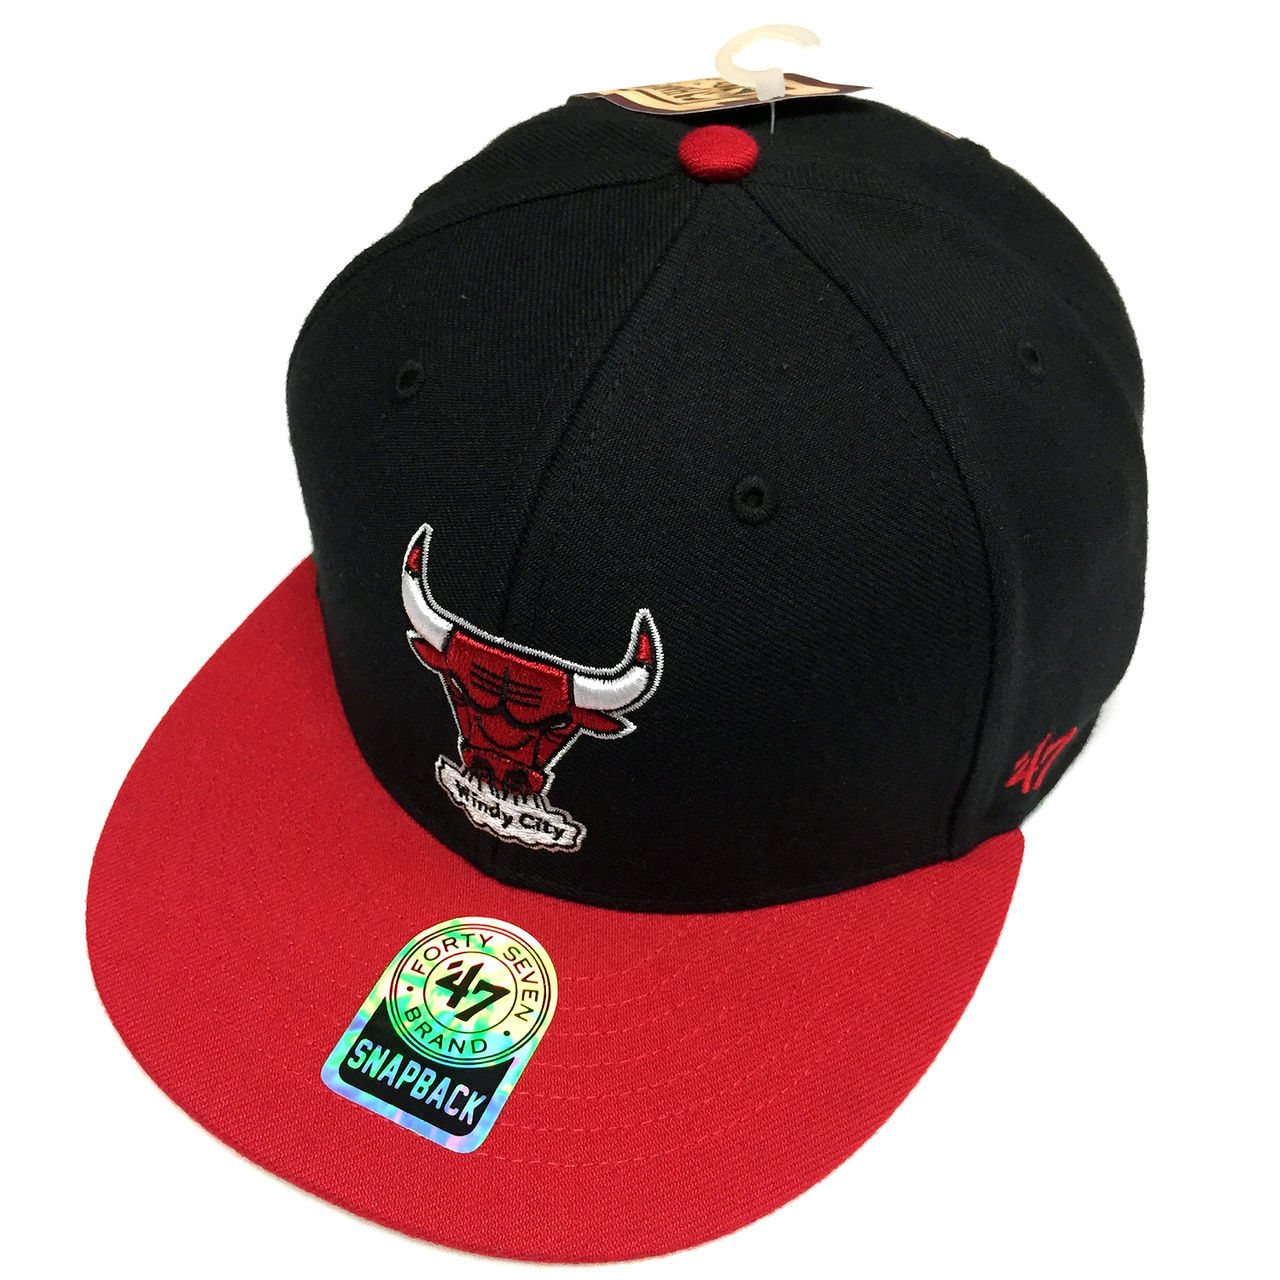 7625a7eef0a36 47 Brand NBA Chicago Bulls Hat Classic Logo and 50 similar items